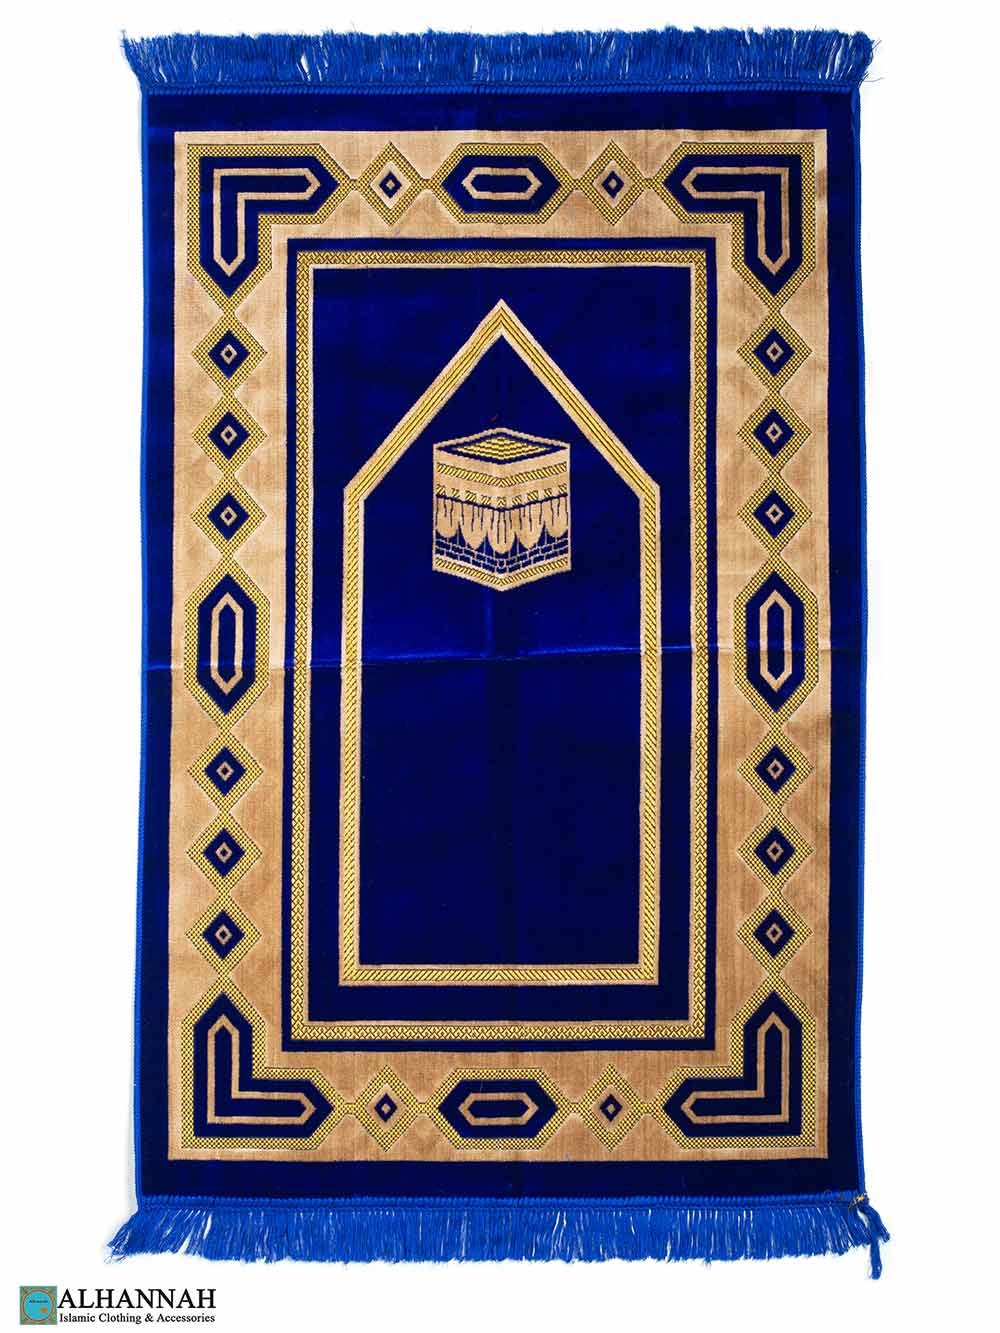 Prayer Rug with Kaaba in Royal Blue